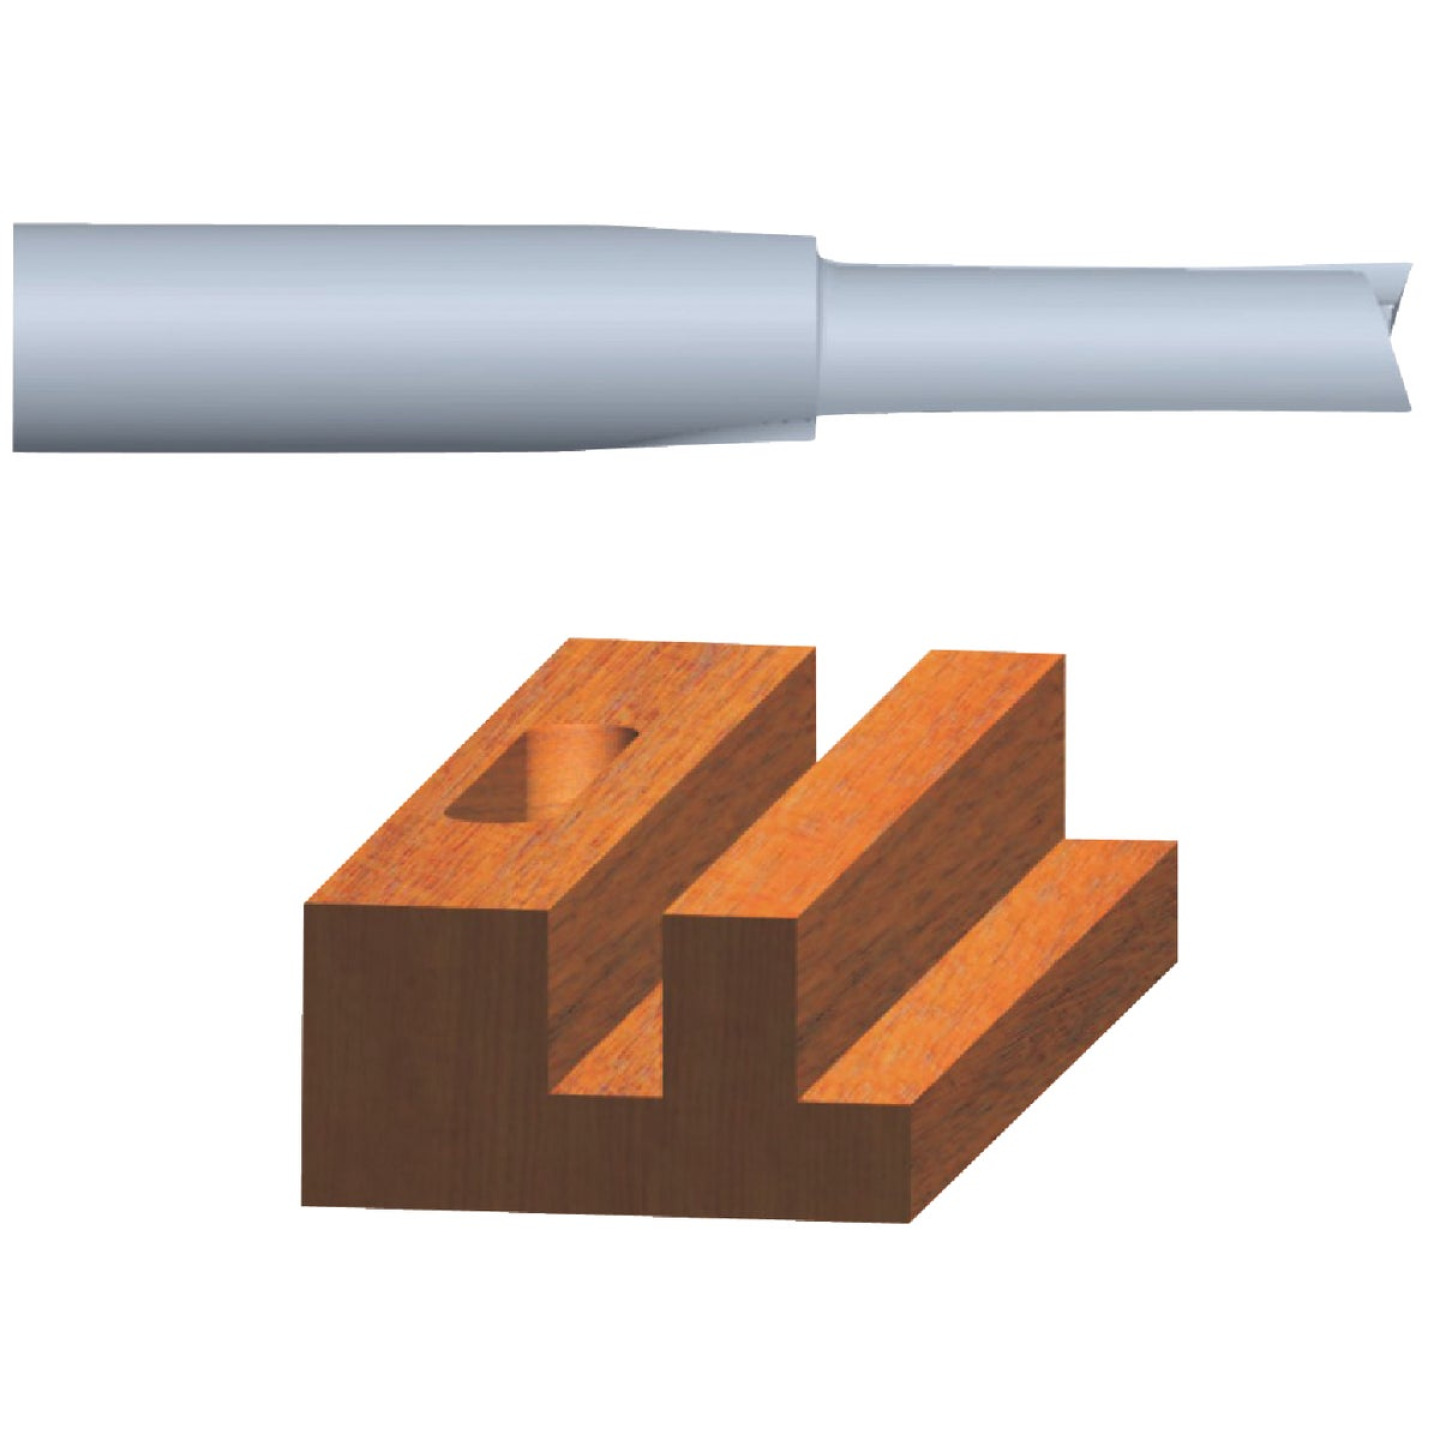 Vermont American Carbide Tip 3/16 In. Straight Bit Image 1